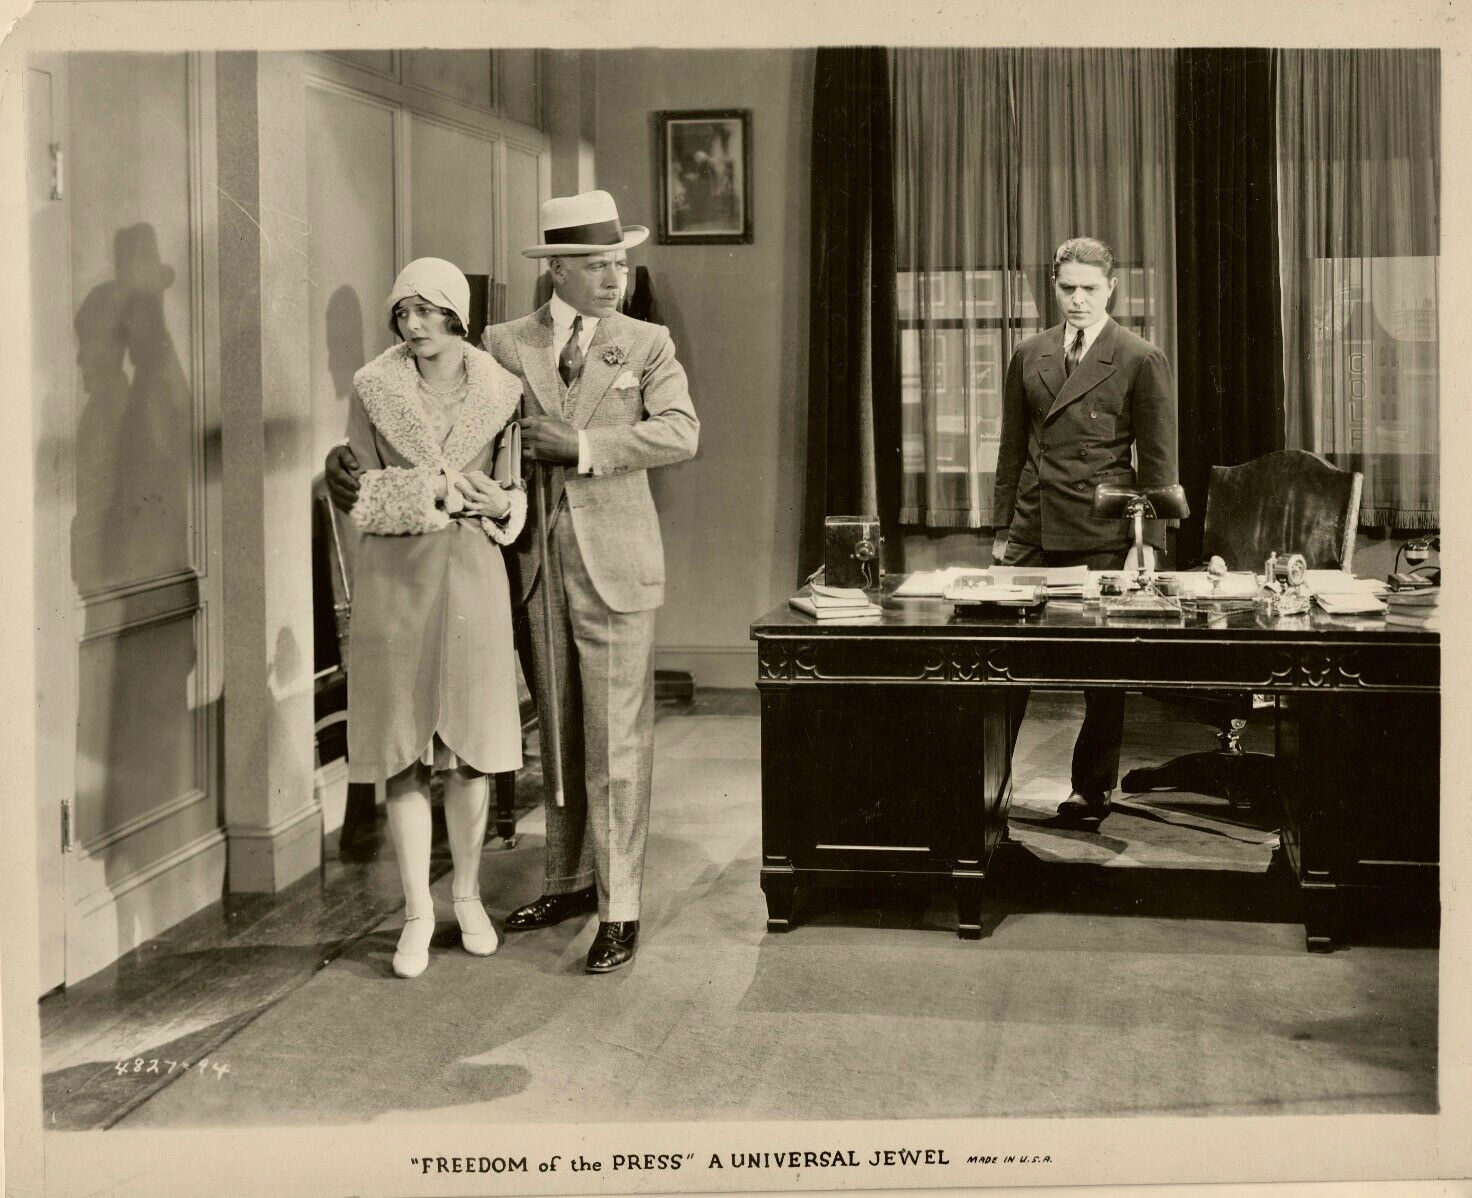 Marceline Day, Malcolm McGregor, and Lewis Stone in Freedom of the Press (1928)